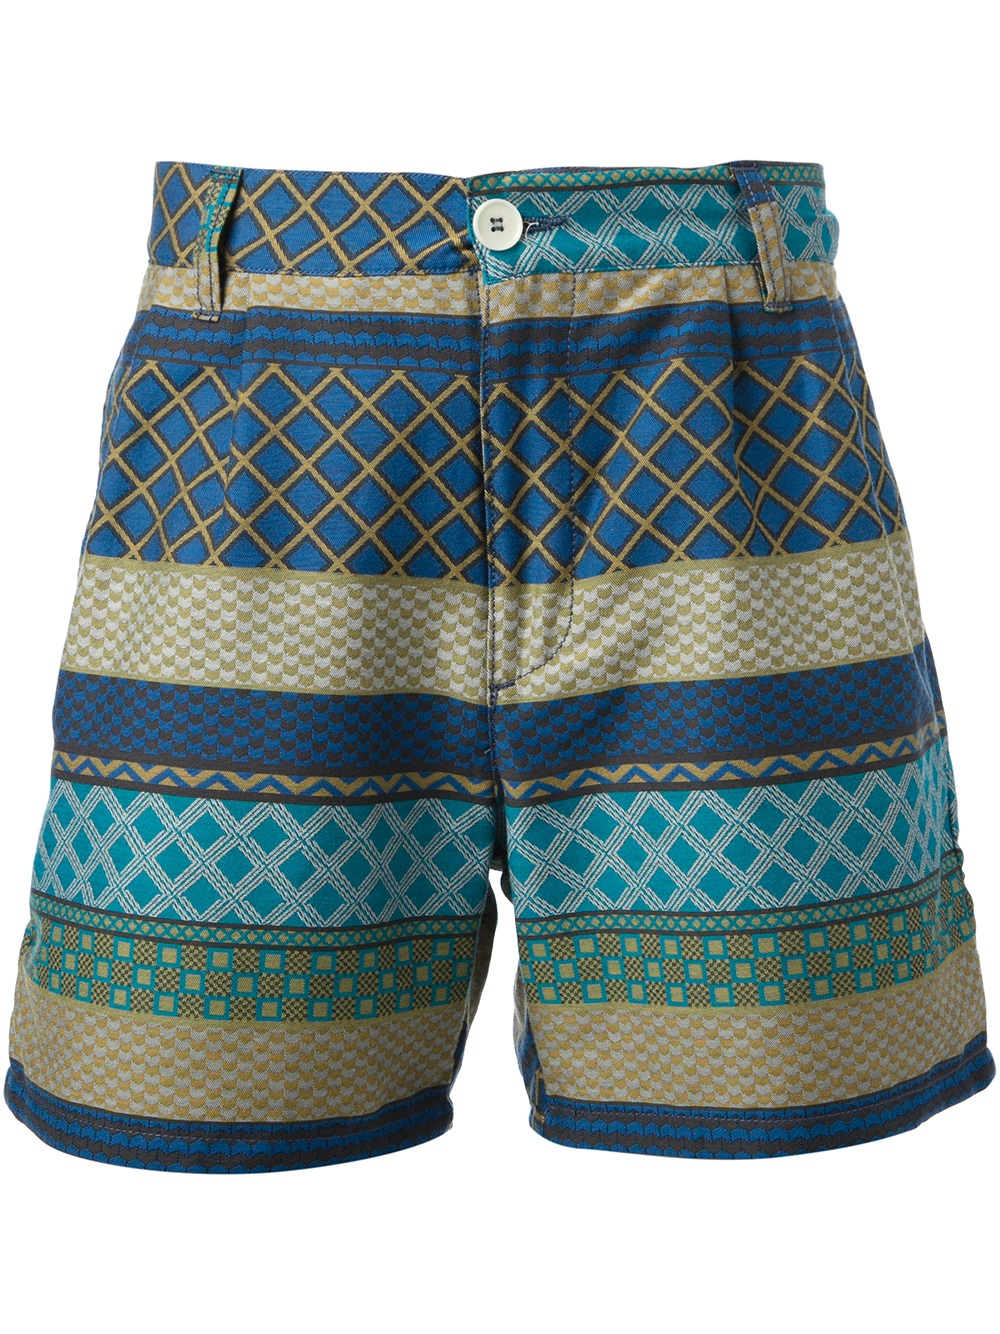 Etudes studio Archives Patterned Shorts for Men | Lyst